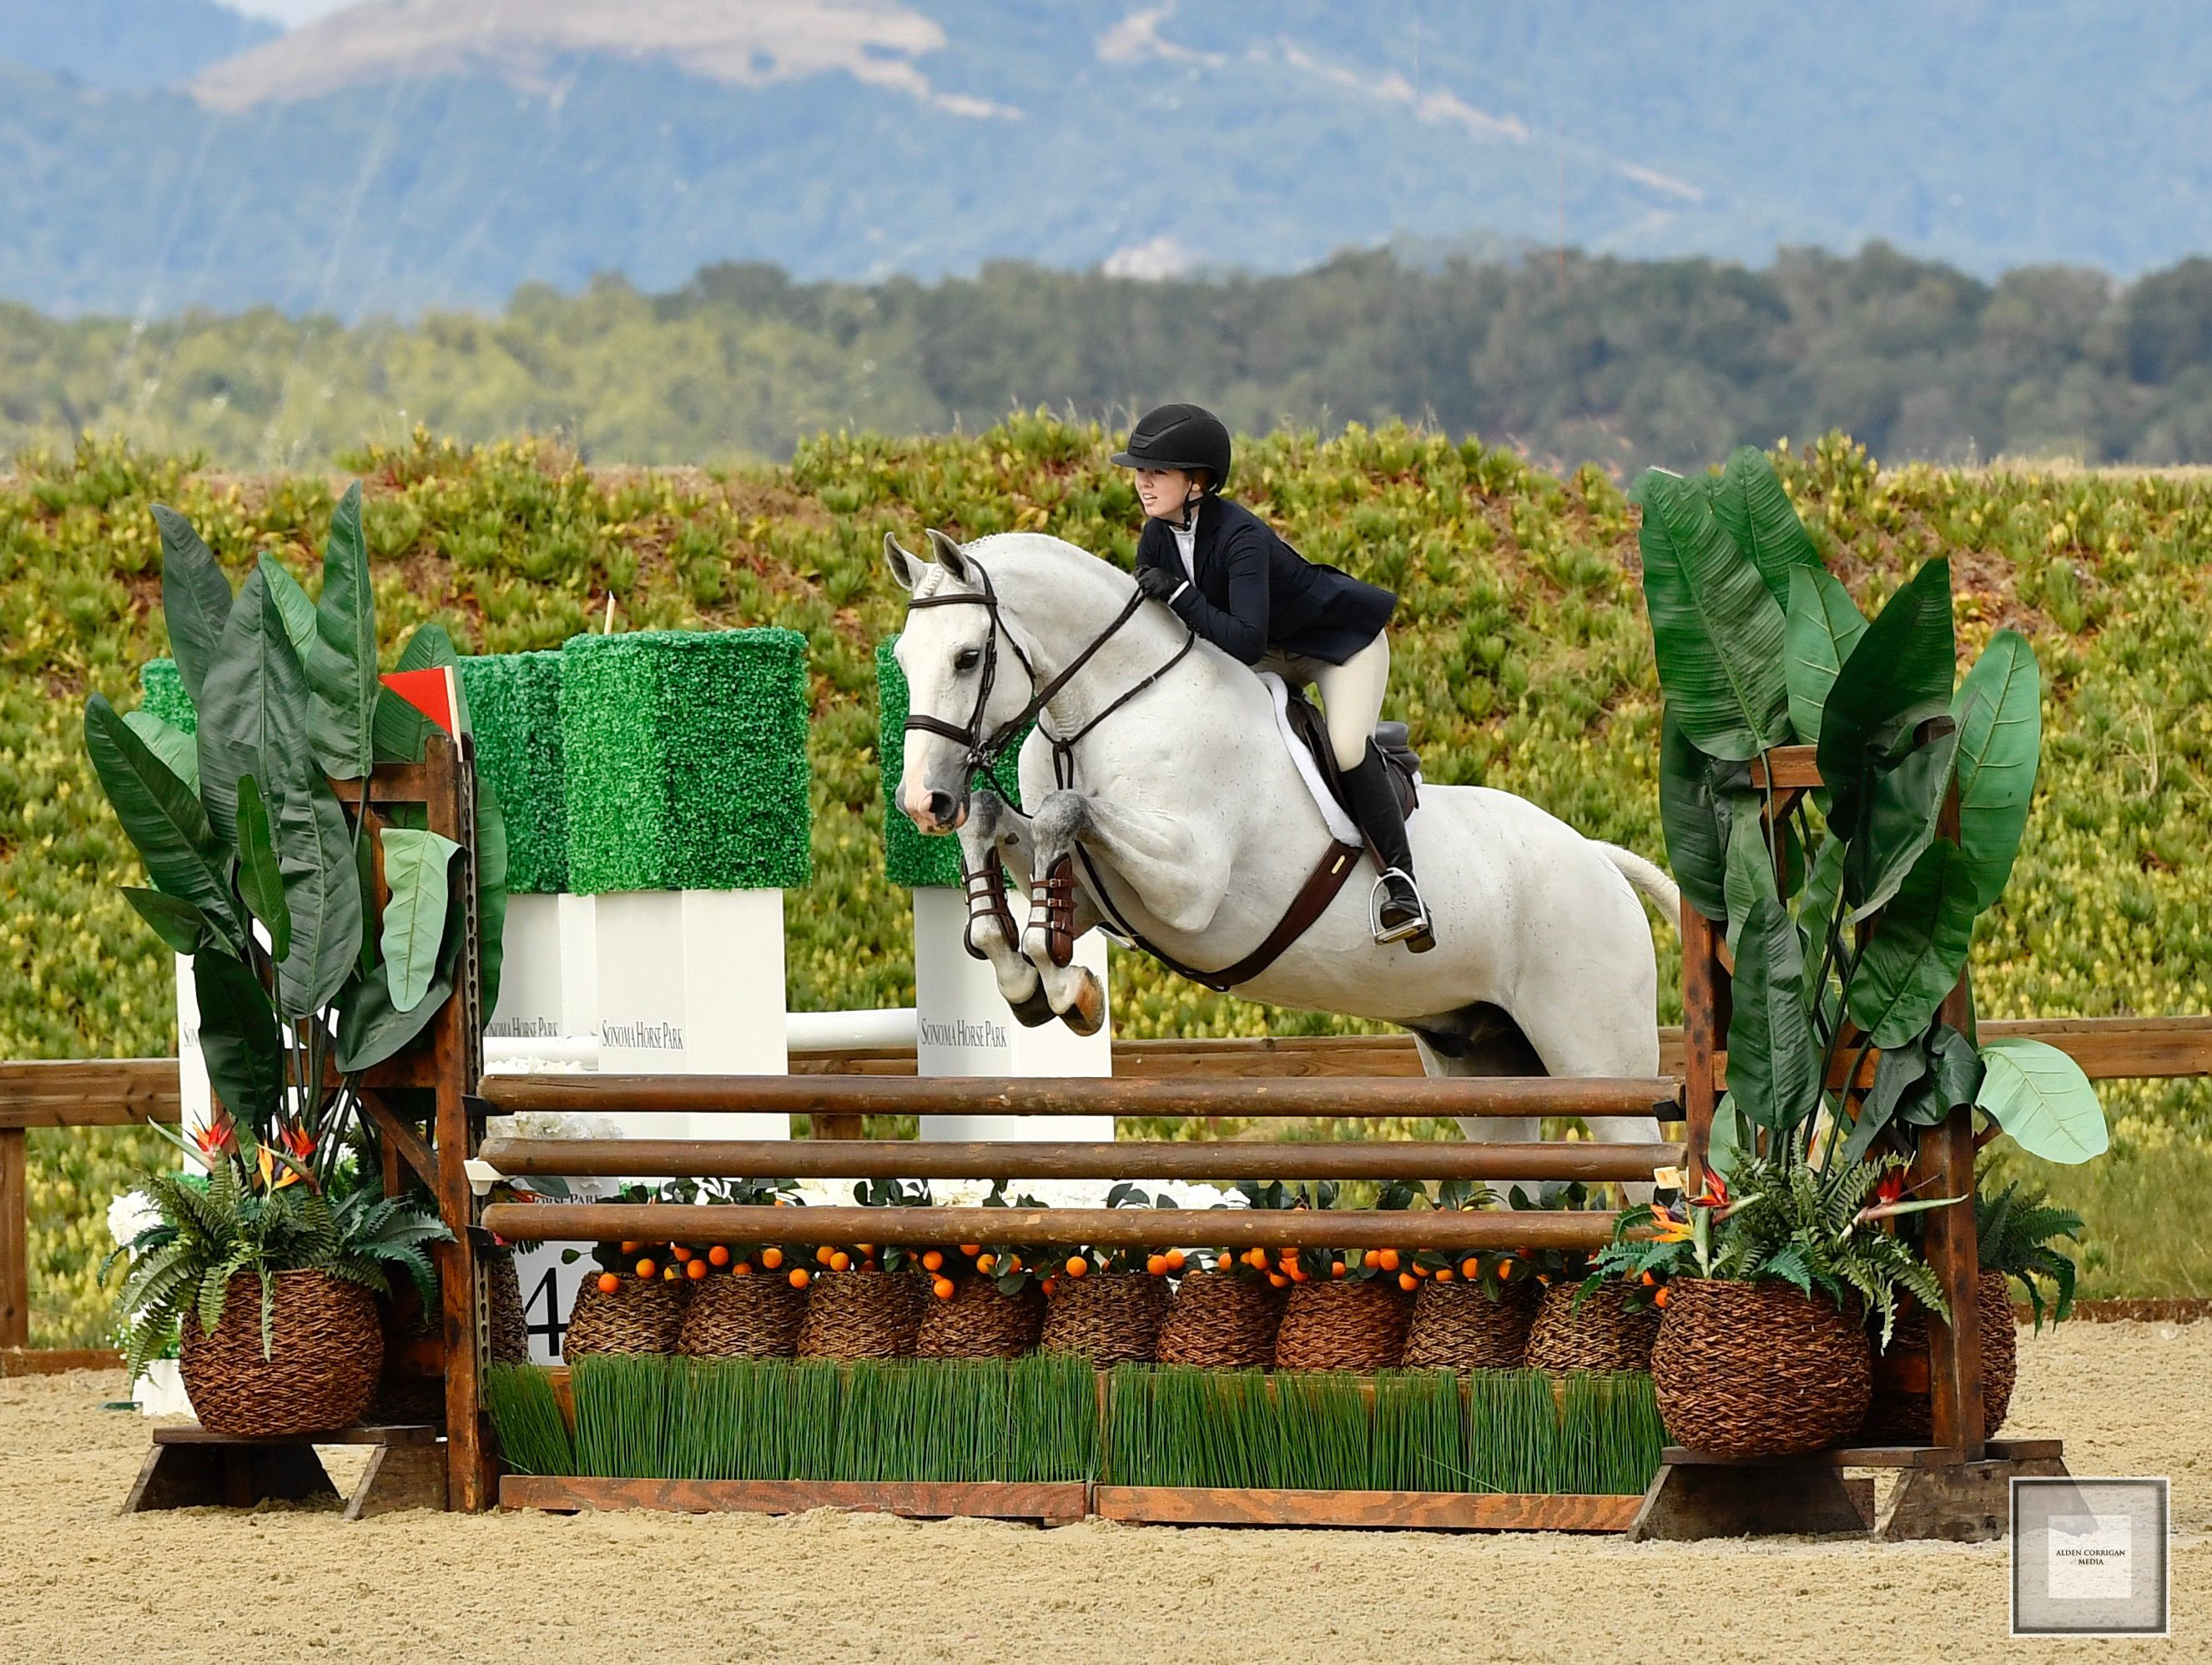 Student Skyler Allen and Winterfell at Sonoma Horse Park. Photography by Alden Corrigan Media​​​​​​​